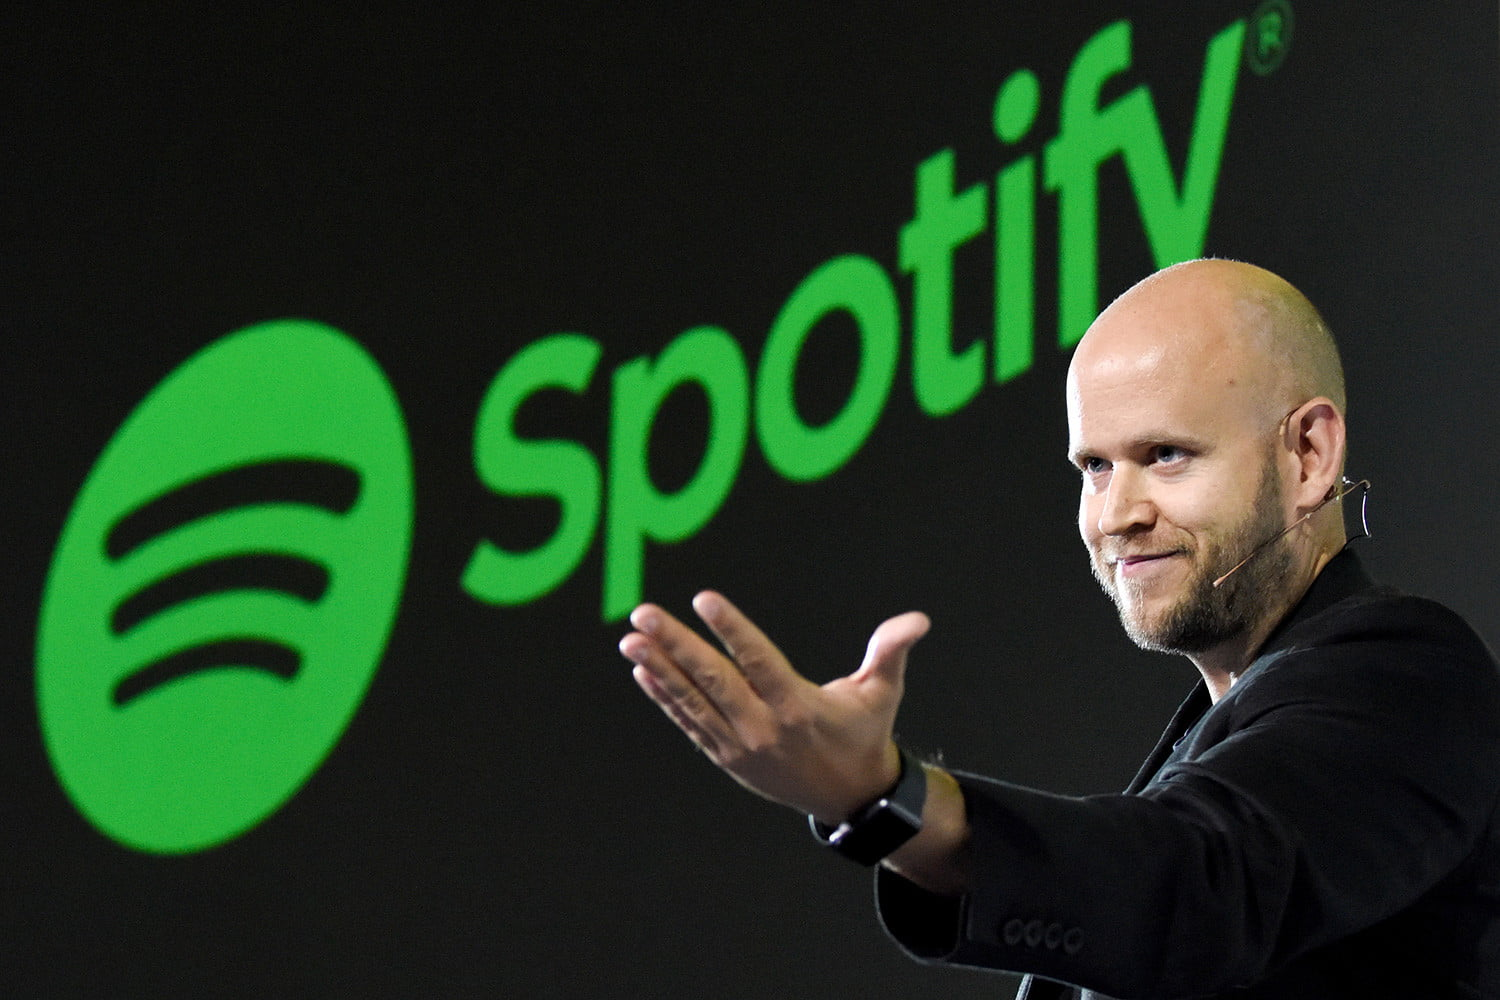 Spotify First Music Service to Hit 100 Million Paying Subscribers